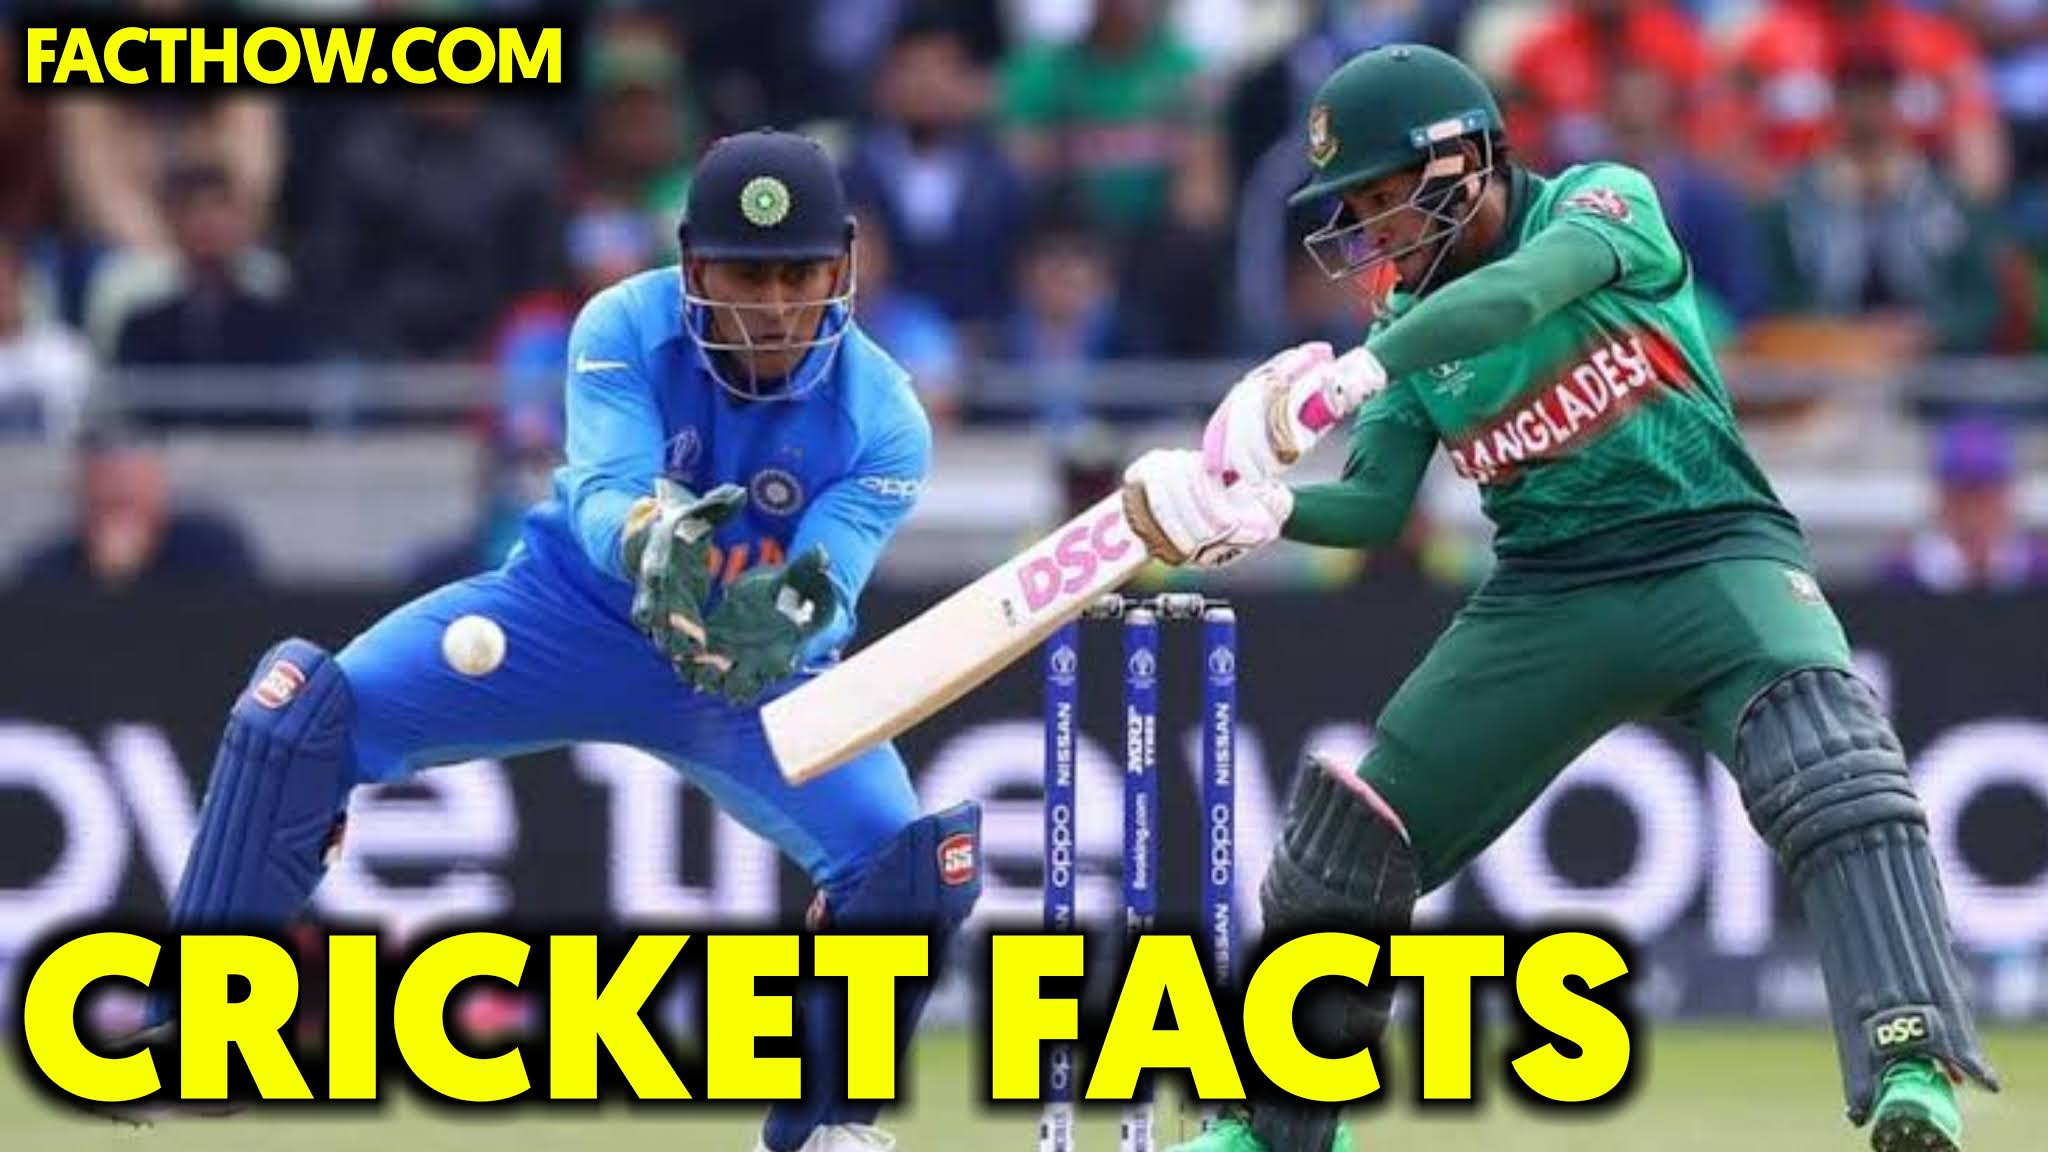 100 FACTS ABOUT CRICKET